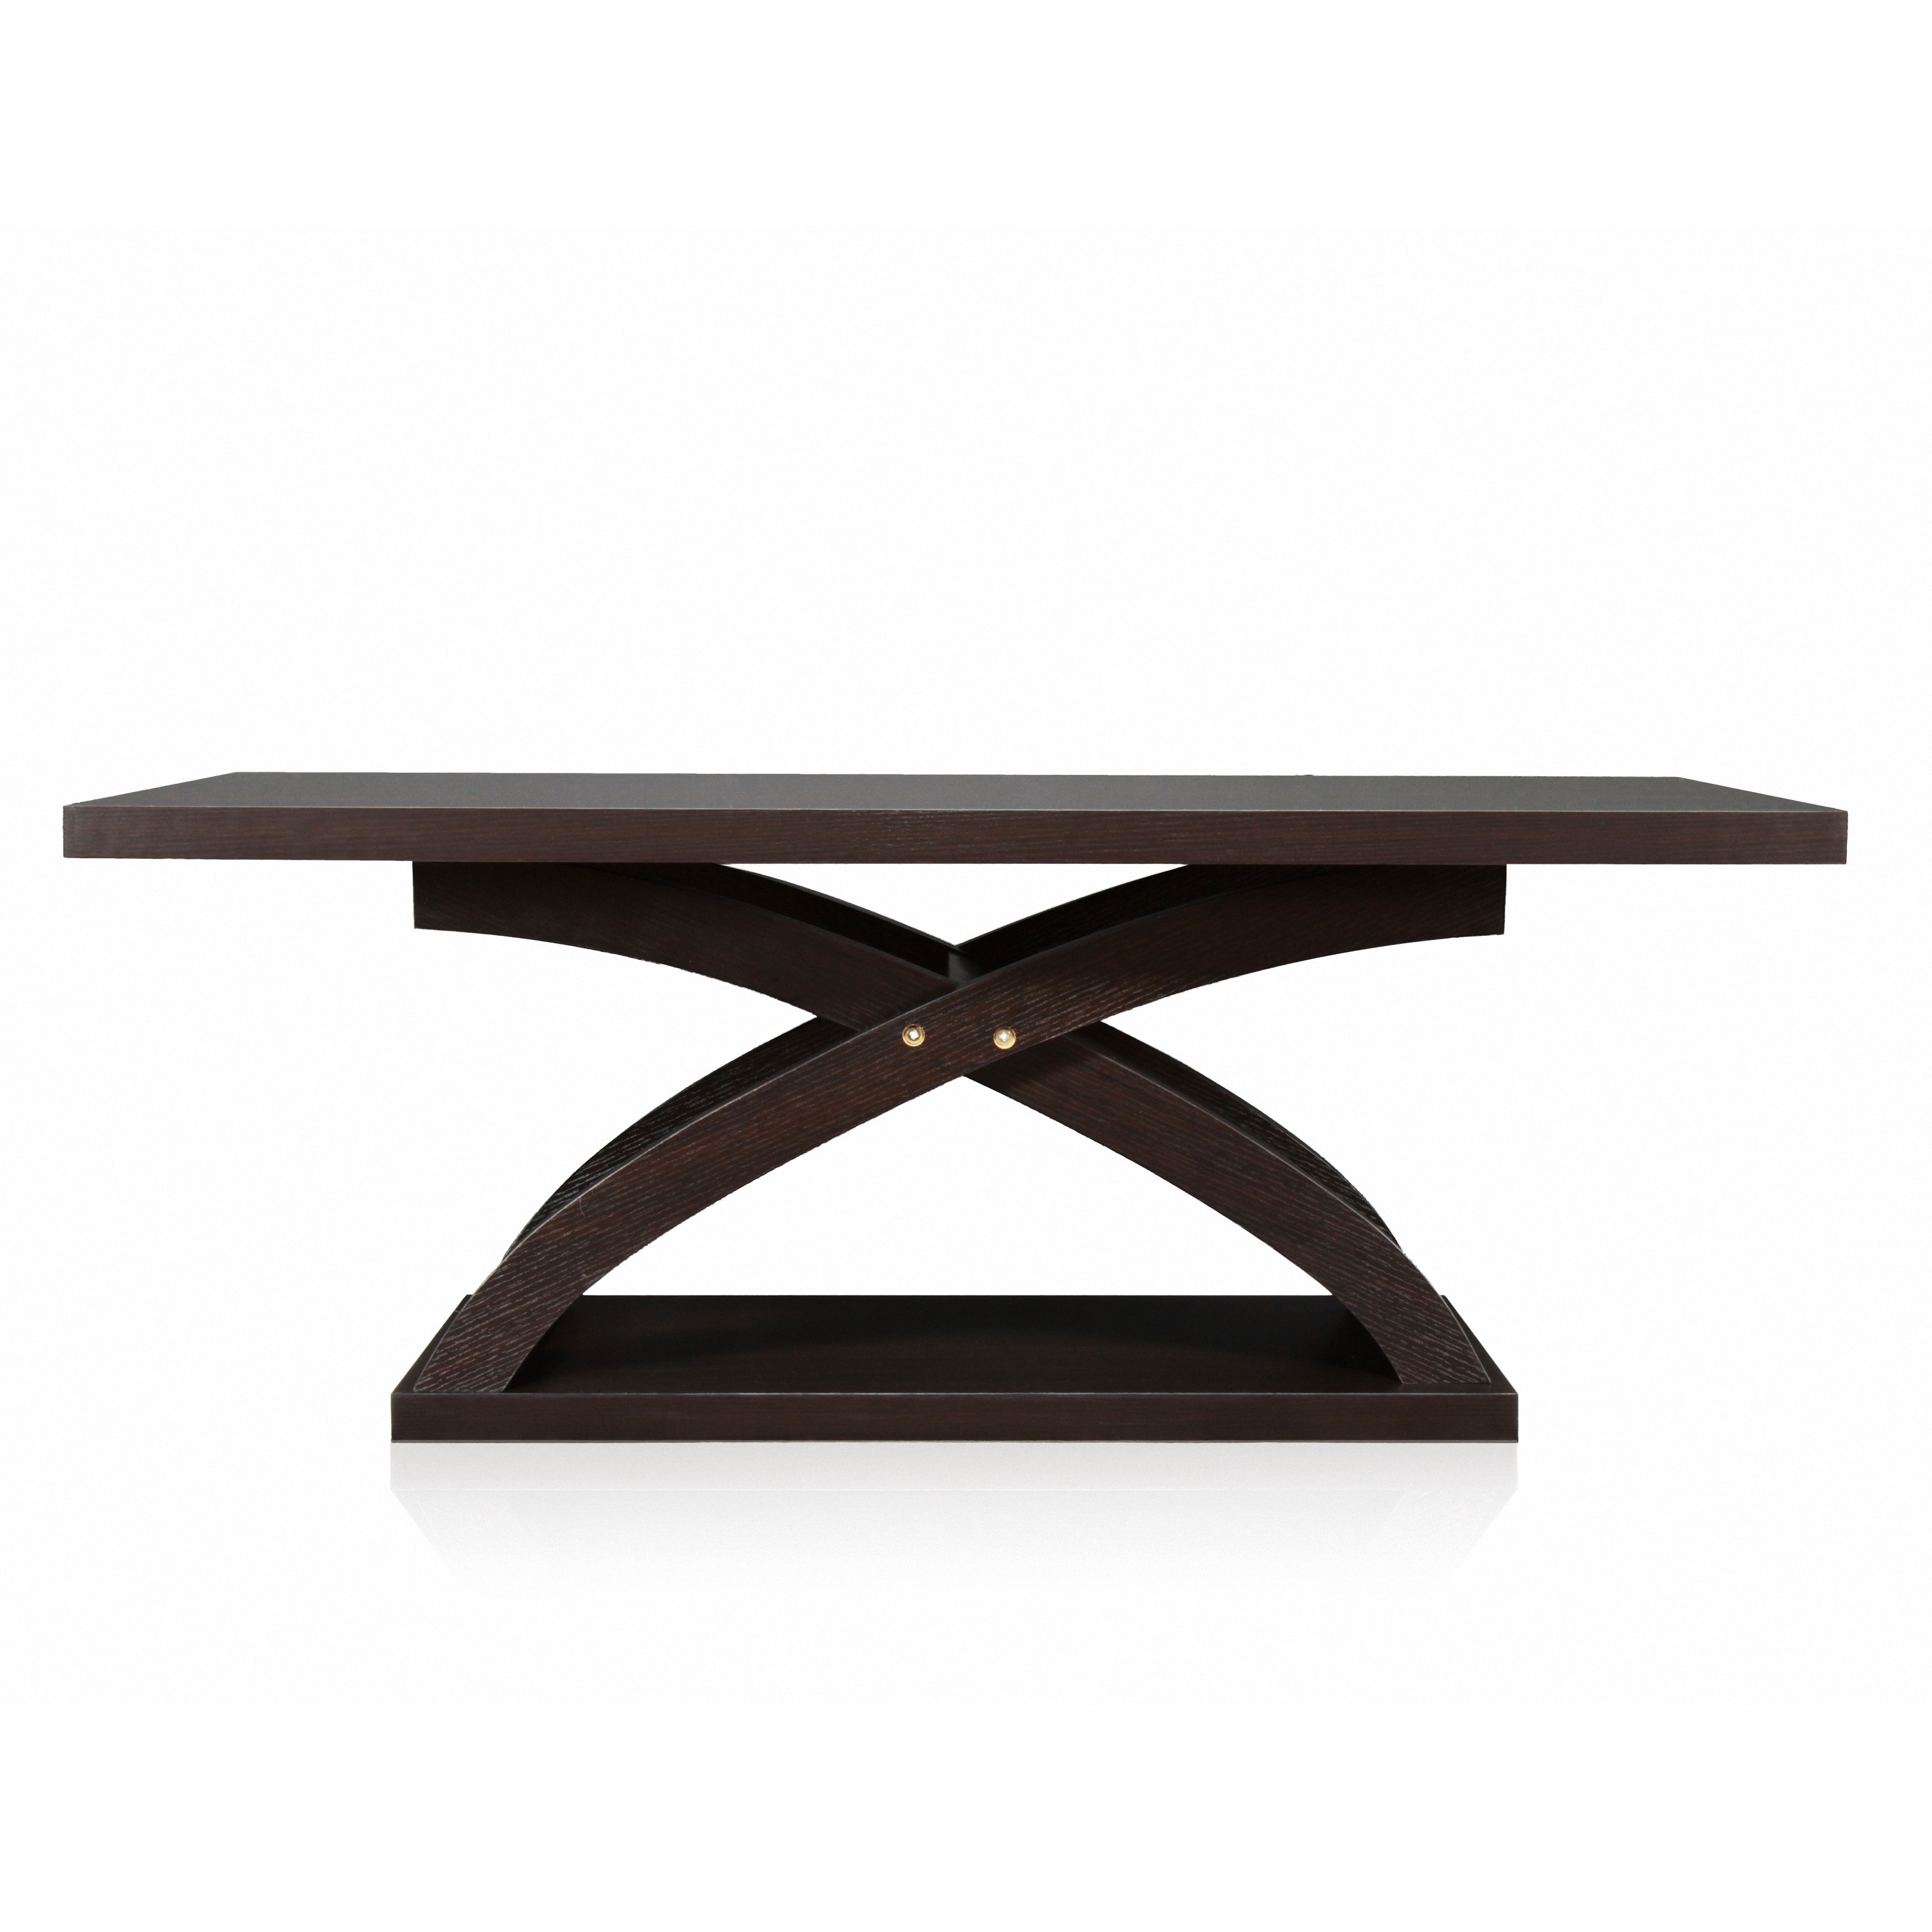 Furniture Of America Barkley Modern Espresso Wood X Base Coffee Table On Free Shipping Today 9264150